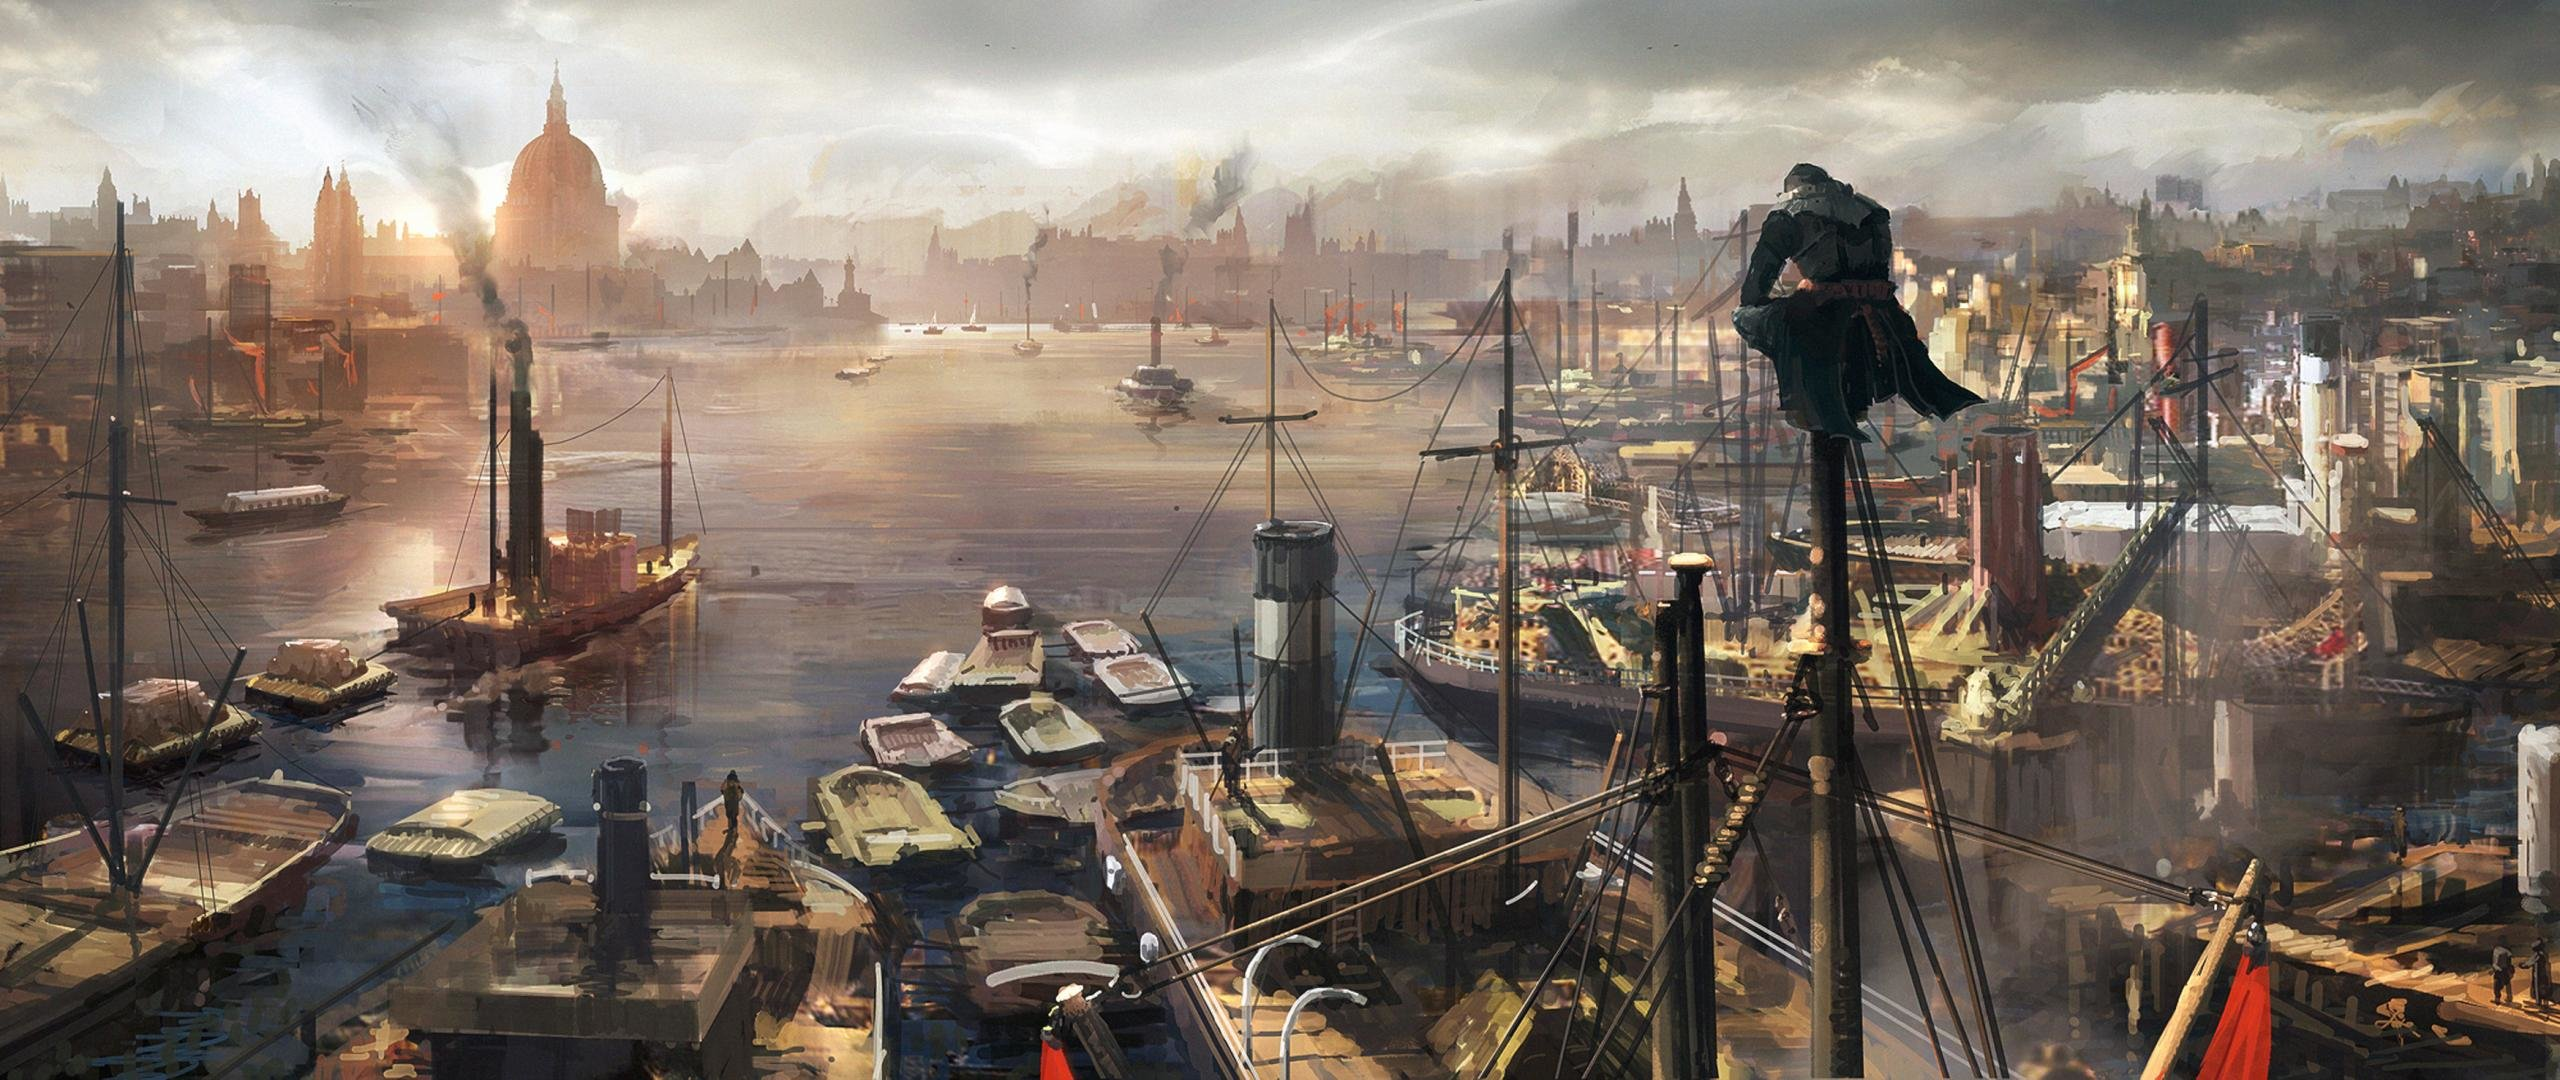 Download Hd 2560x1080 Assassin S Creed Syndicate Pc Wallpaper Id